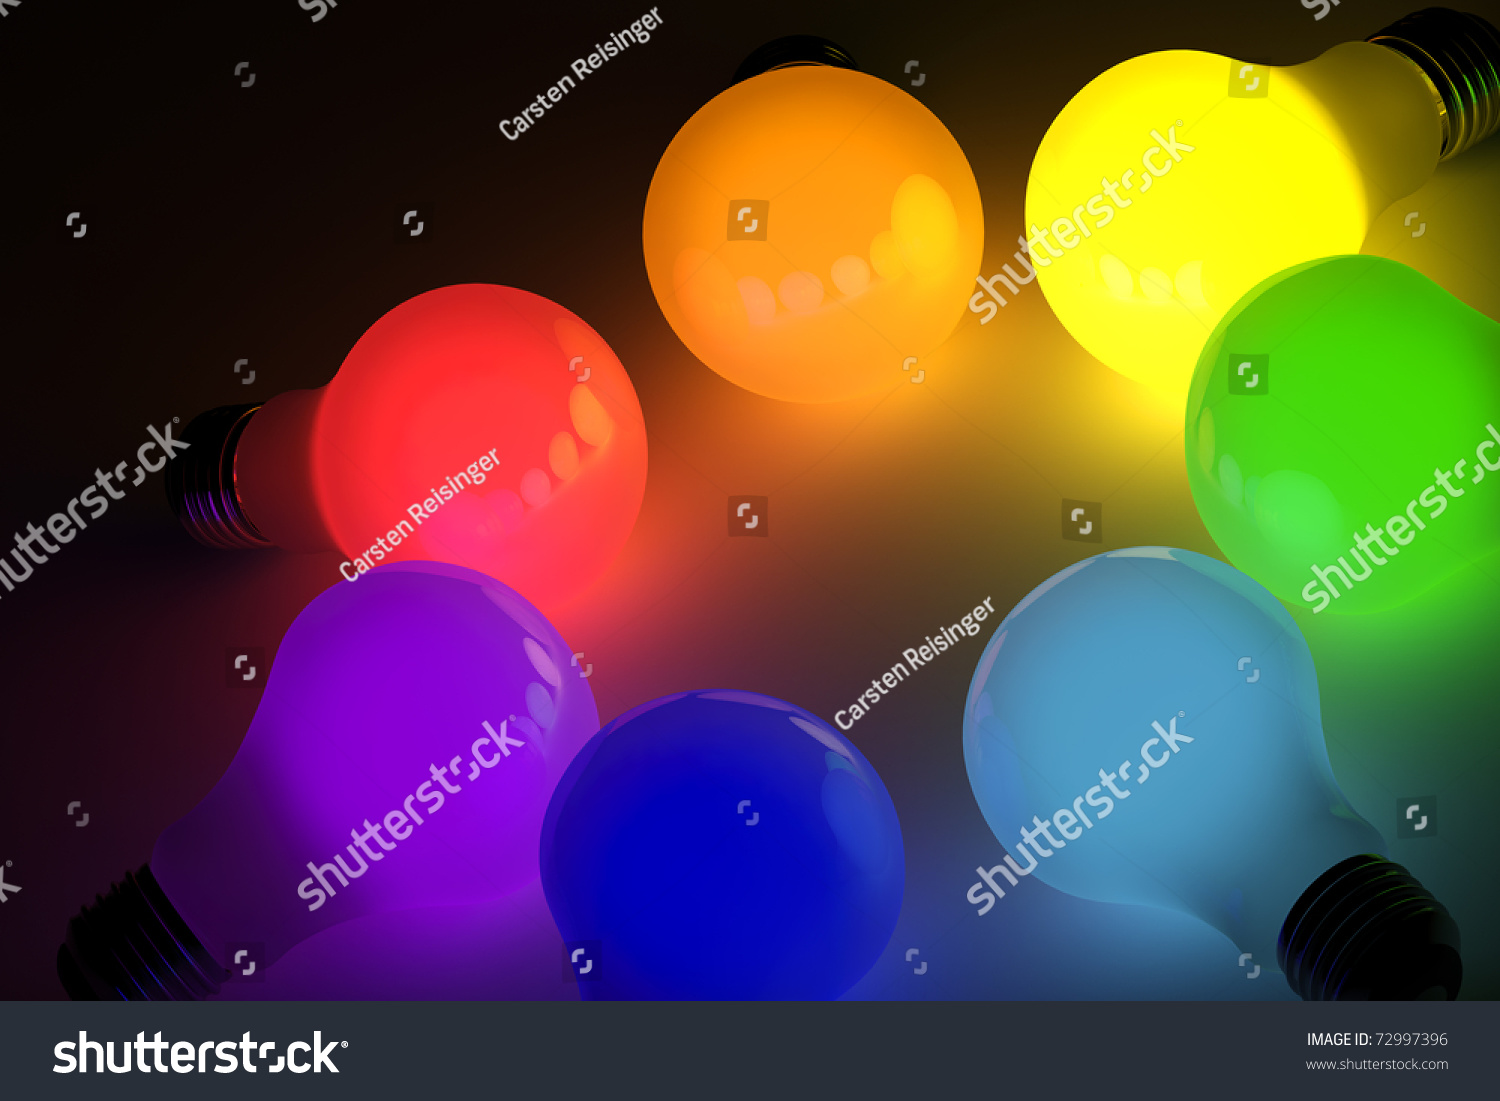 colored light bulbs over black background preview save to a lightbox - Colored Light Bulbs